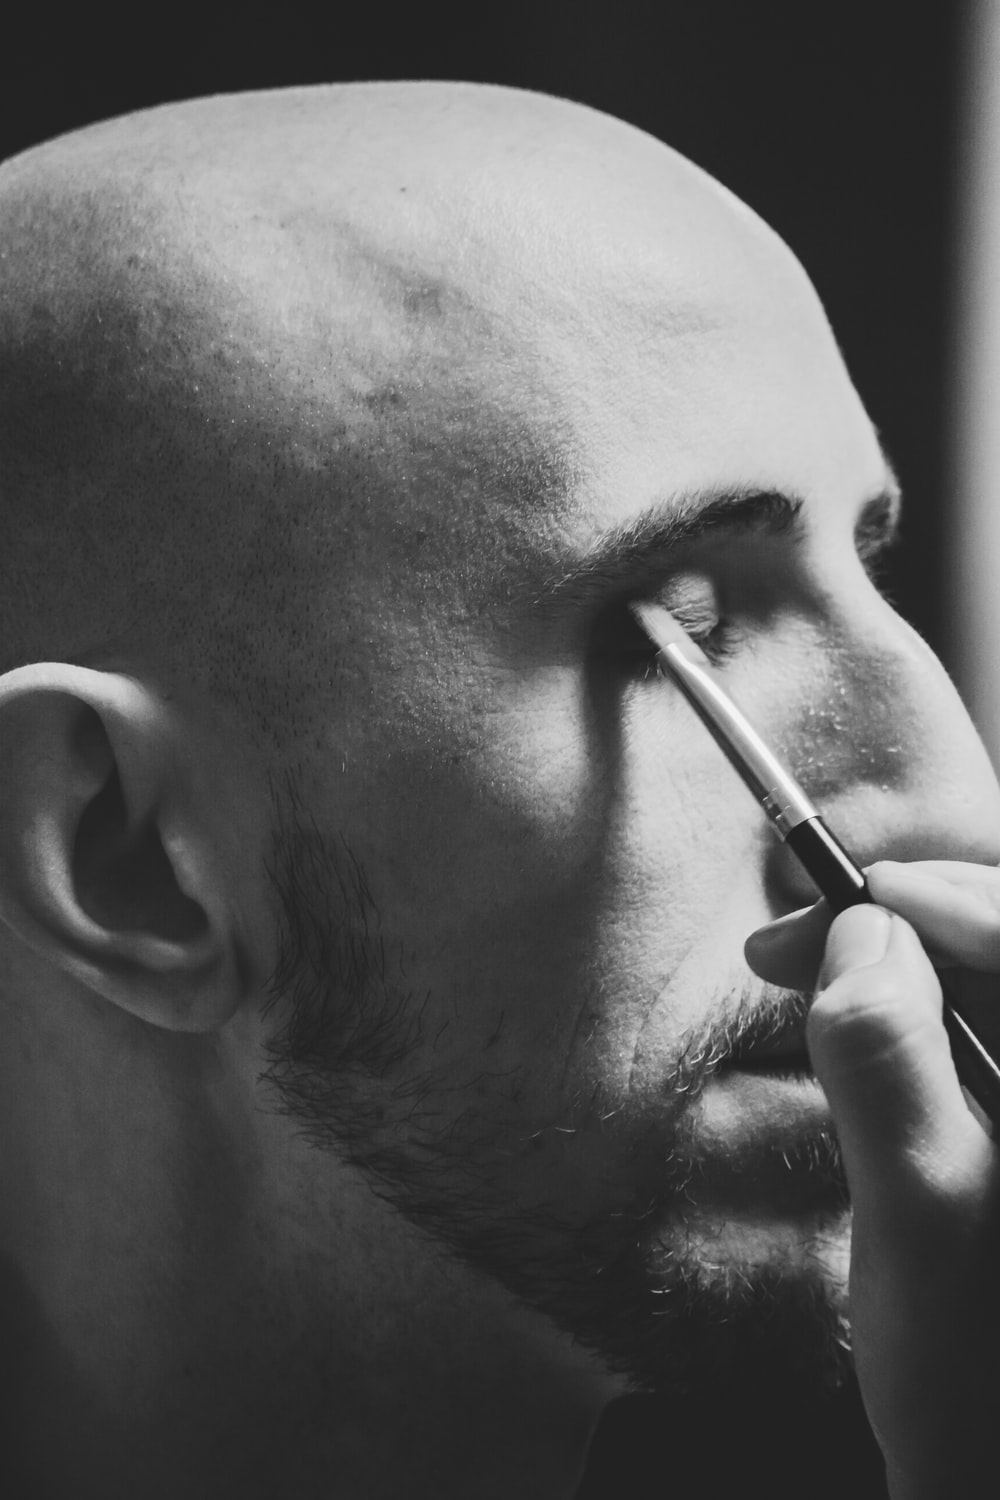 grayscale photo of person putting eyeshadow